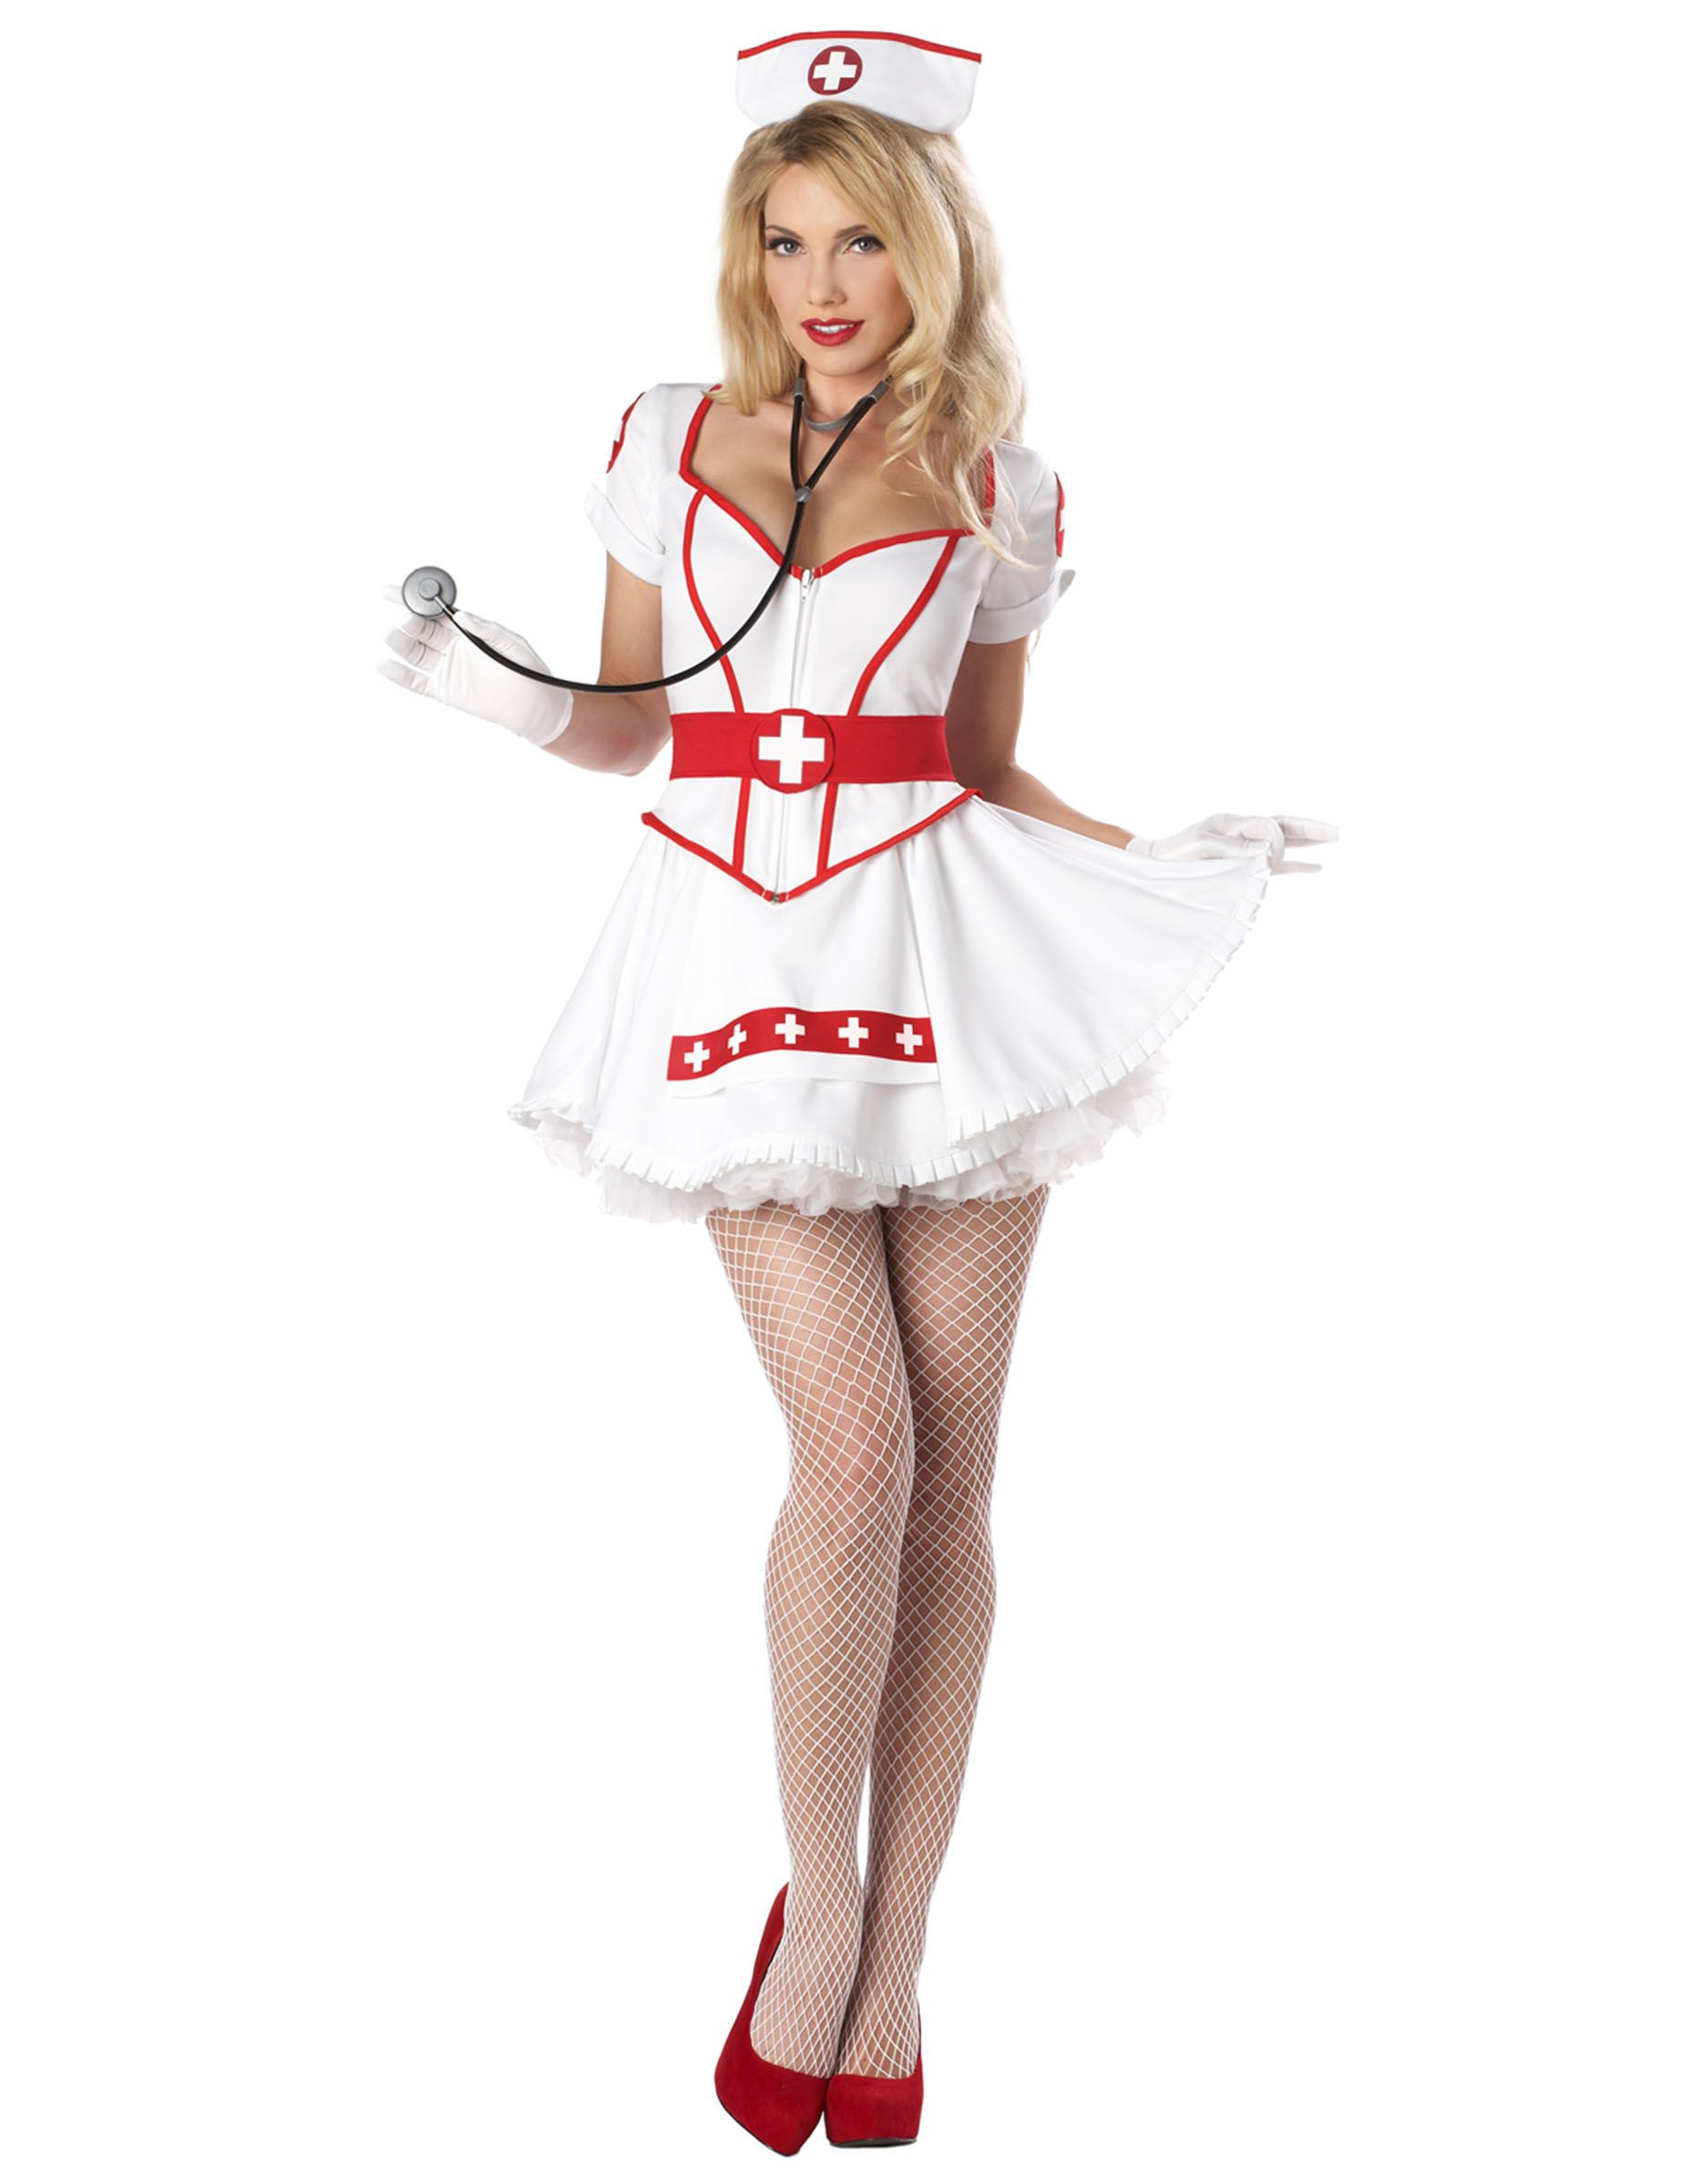 4f75d692d93b0 Sexy nurse's outfit for women: This nurse's outfit for women includes a  dress, a belt and a nurse's hat (gloves, tights, skirt, shoes and  stethescope not ...